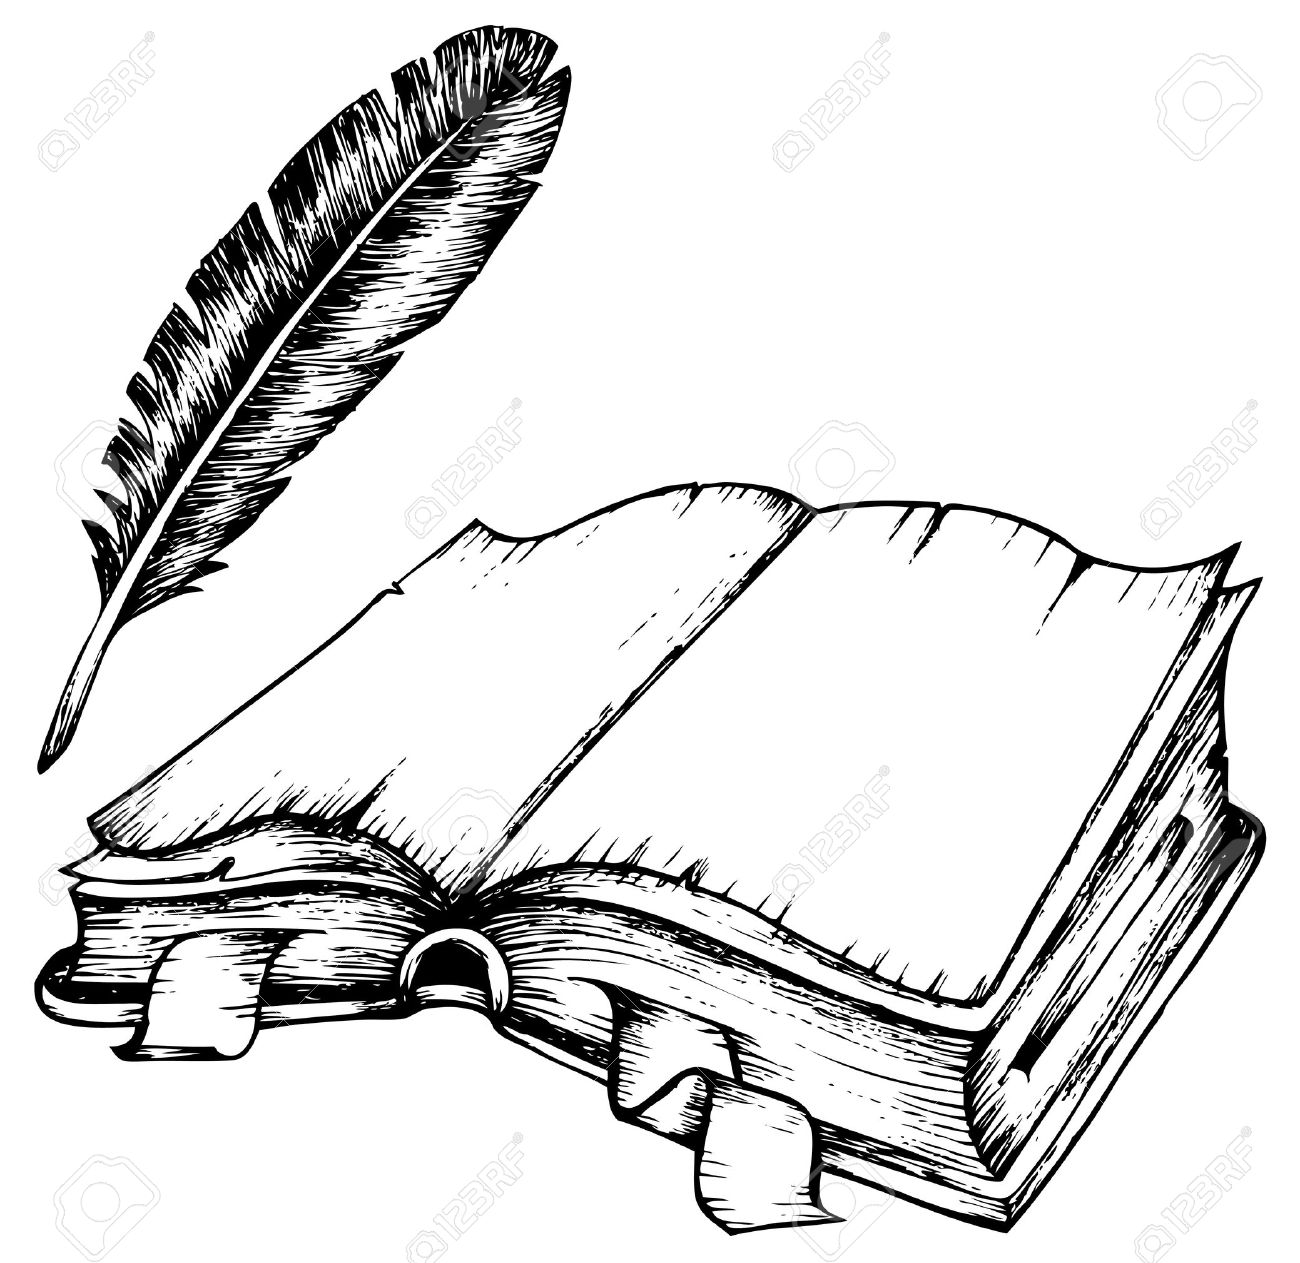 1300x1263 Drawing Of Opened Book With Feather Illustration. Royalty Free